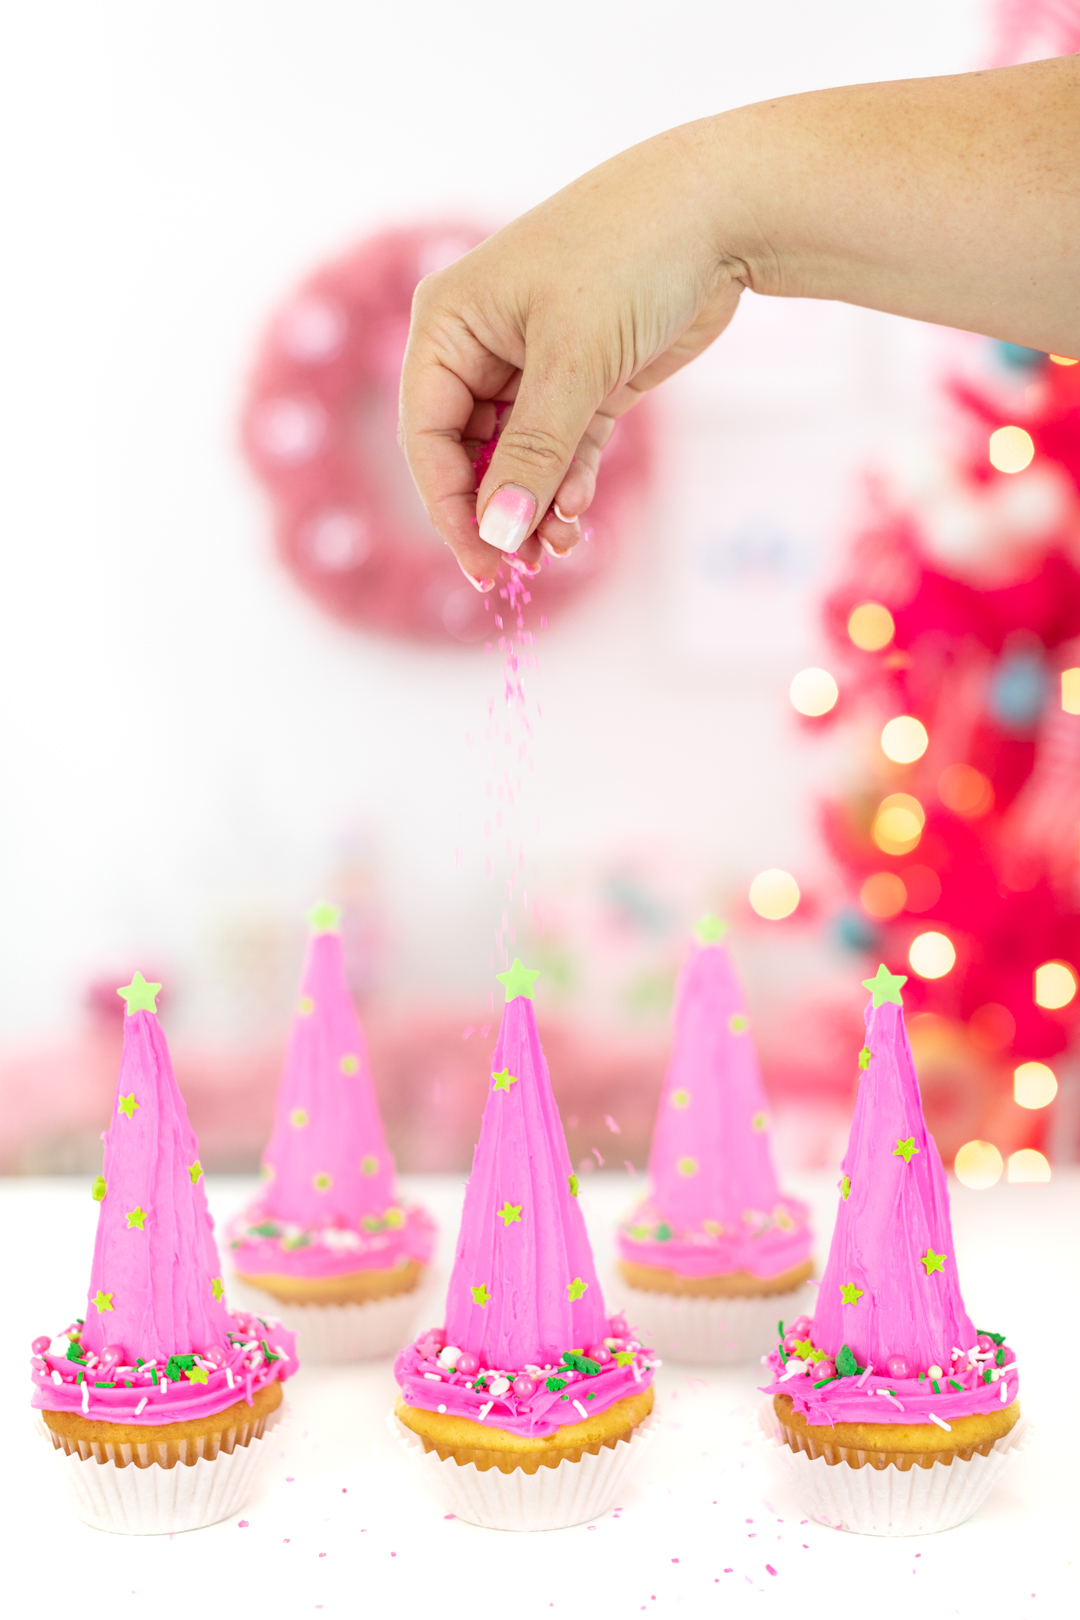 sprinkling pink sugar crystals over pink christmas tree cupcakes